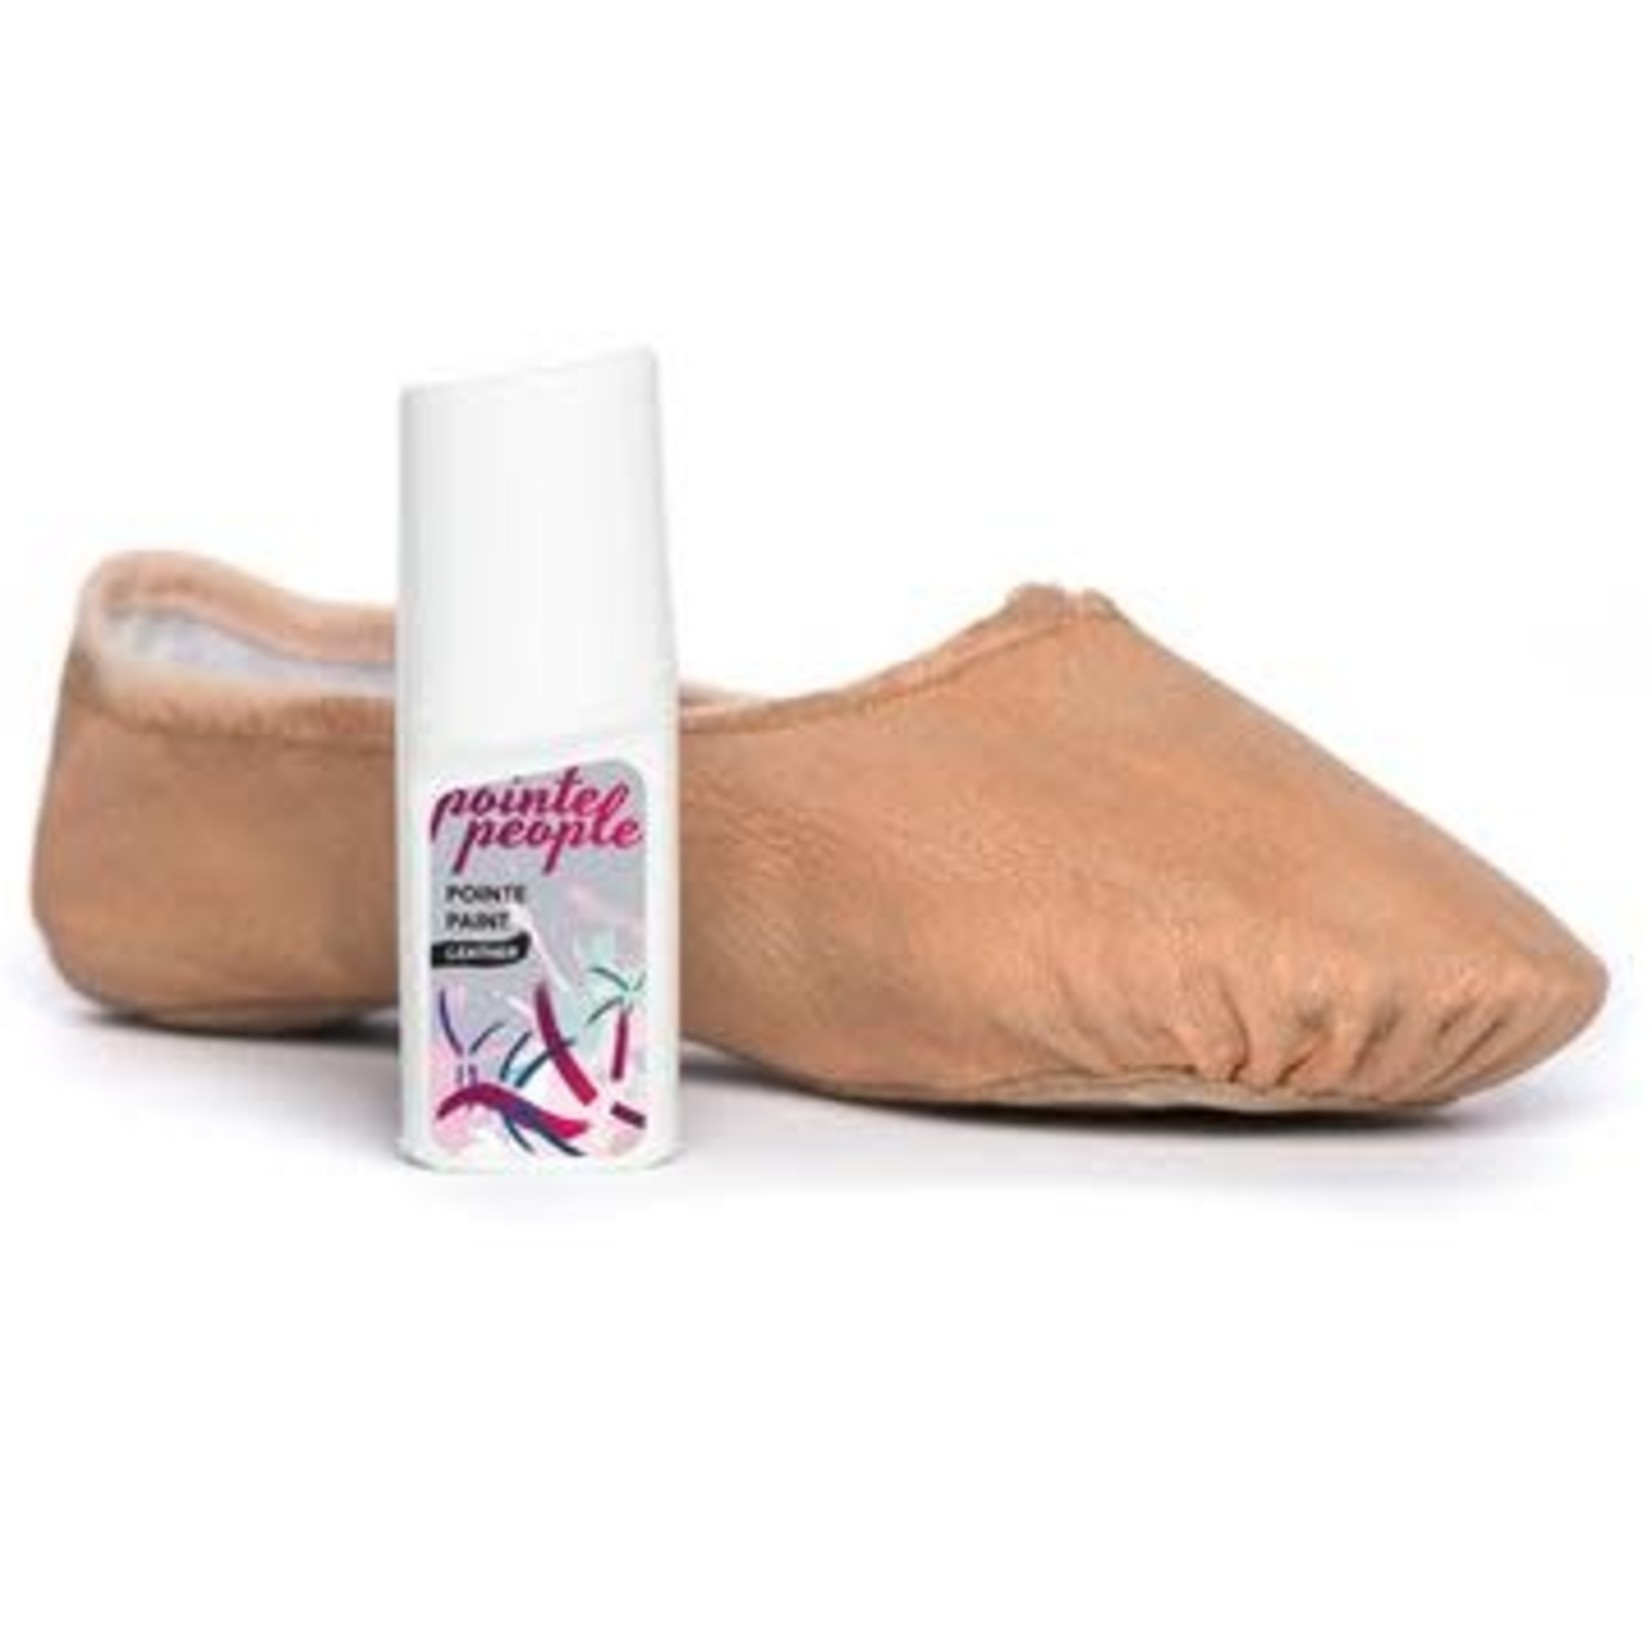 Pointe People Pointe People Leather Paint - Skin Tones